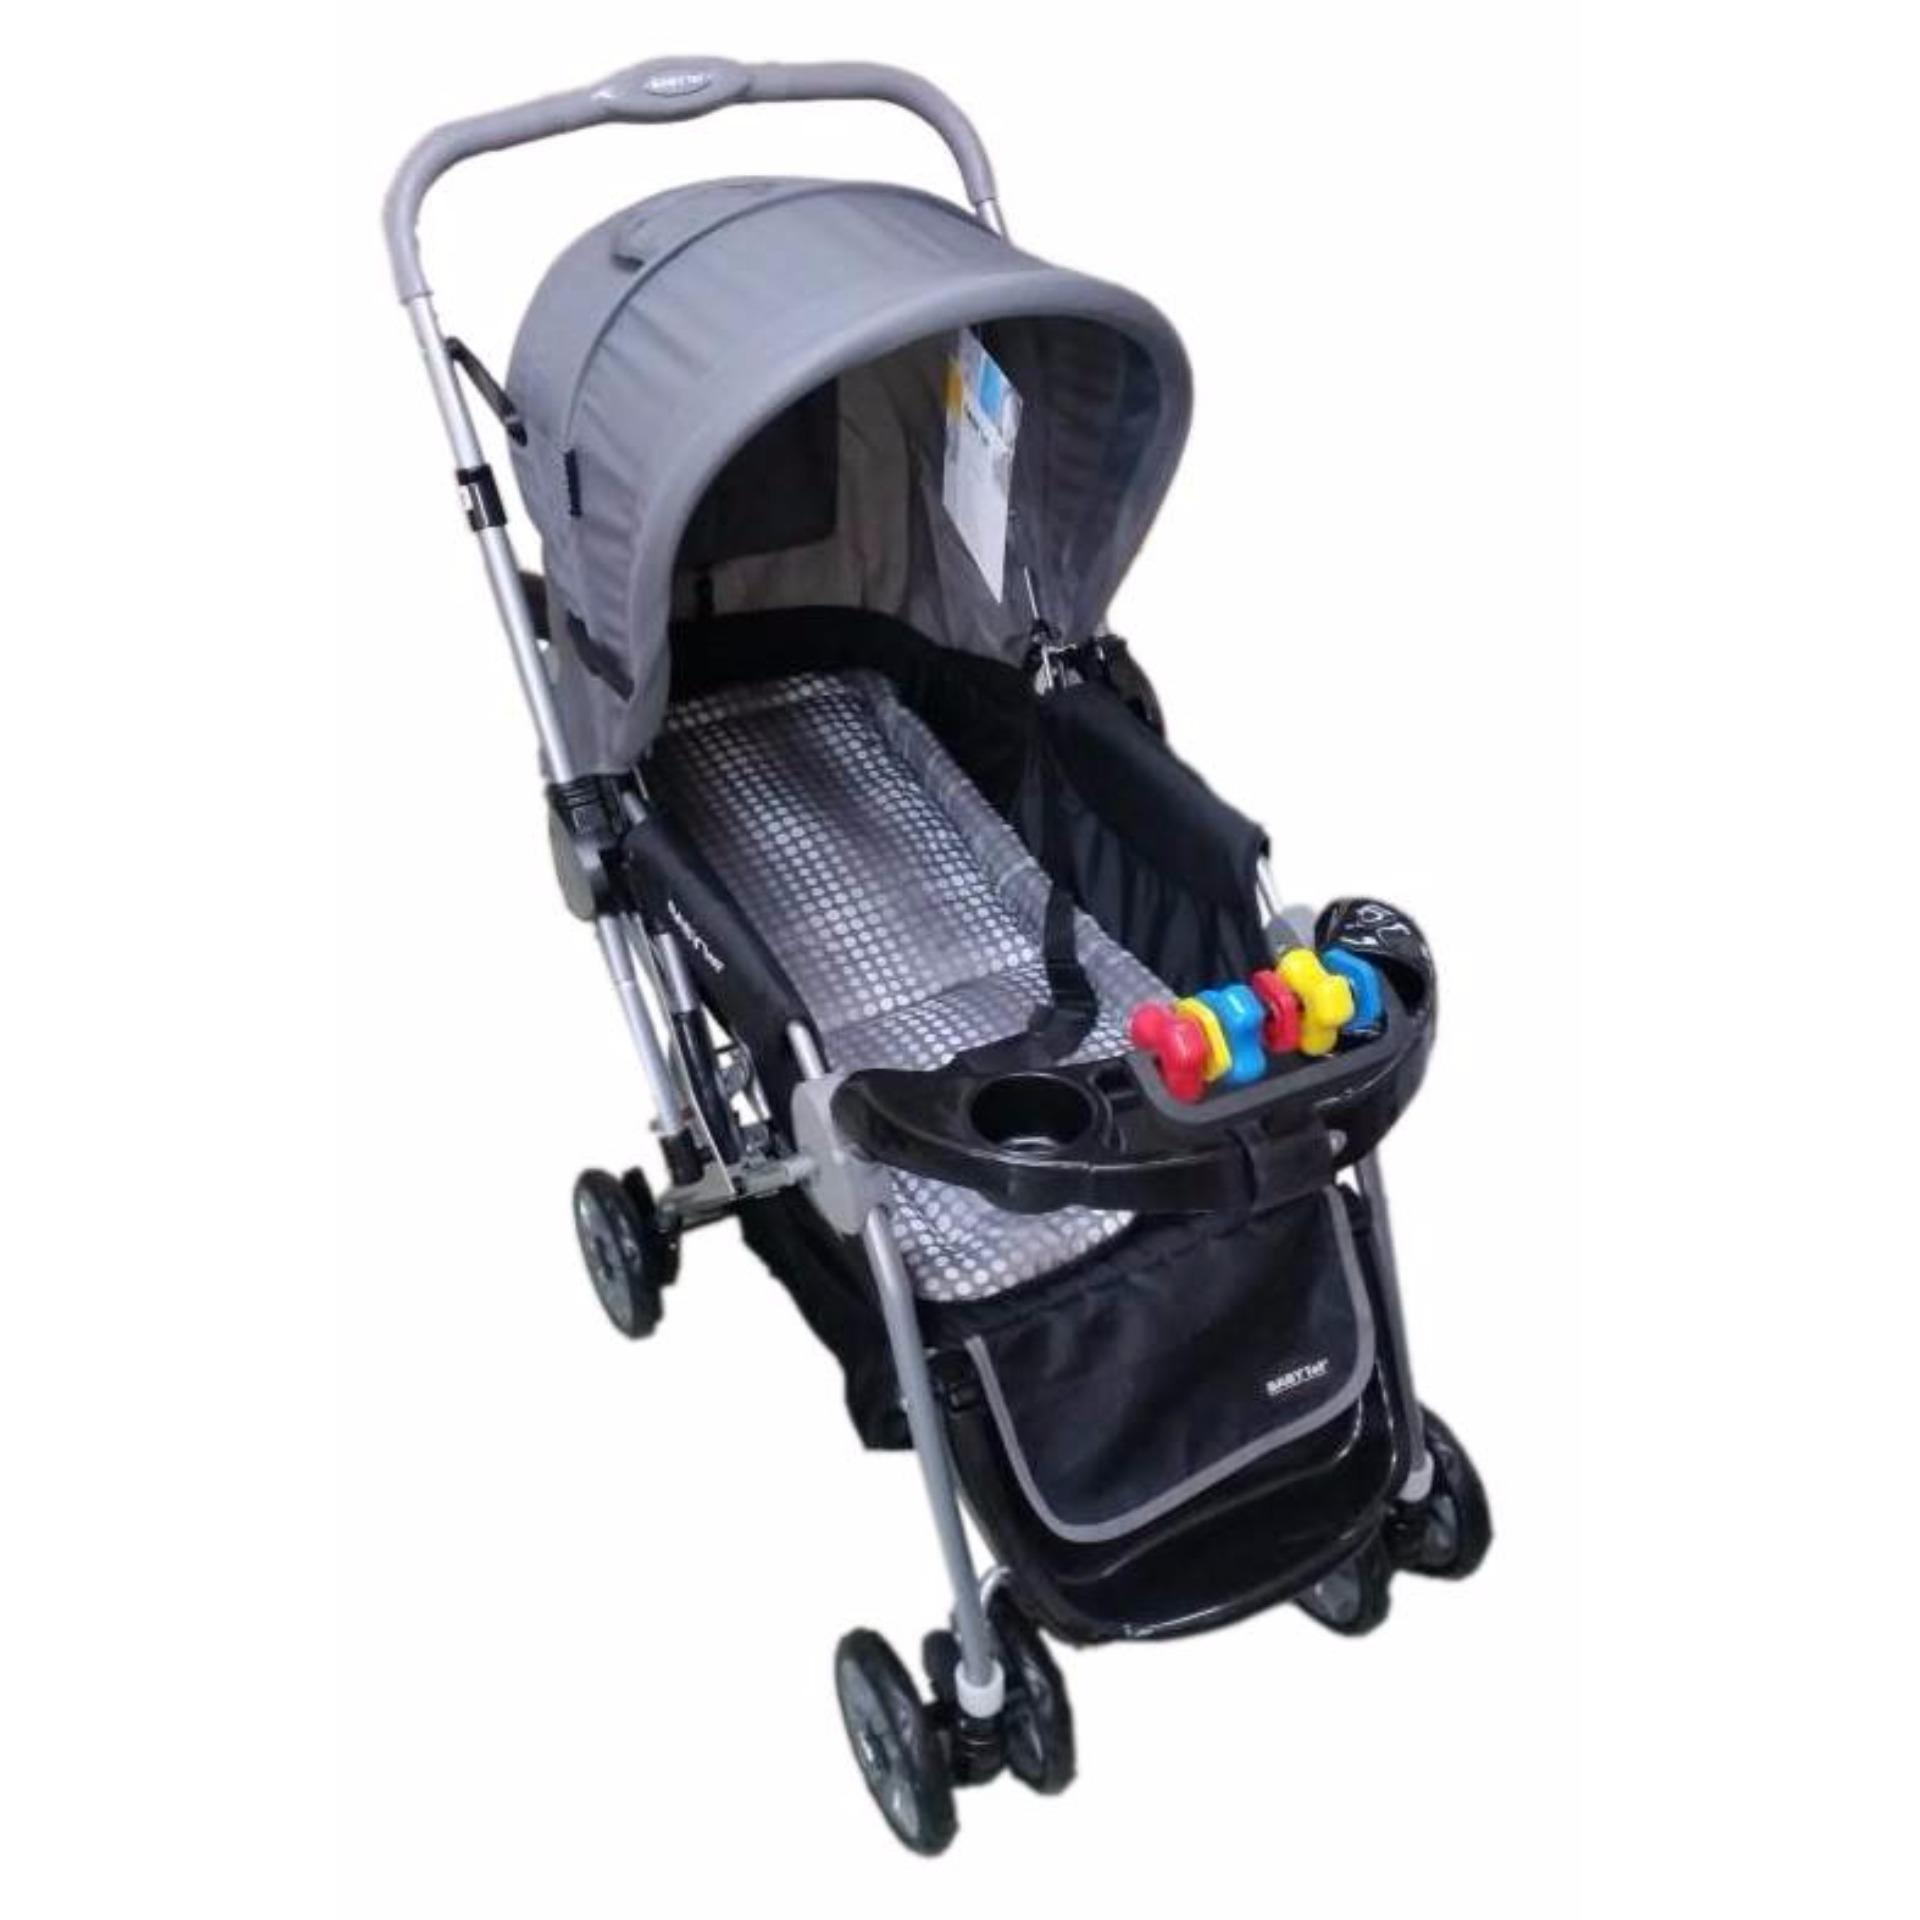 Crib for sale tarlac - Baby 1st Cd S036b Stroller W Toy And Reversable Handle Grey